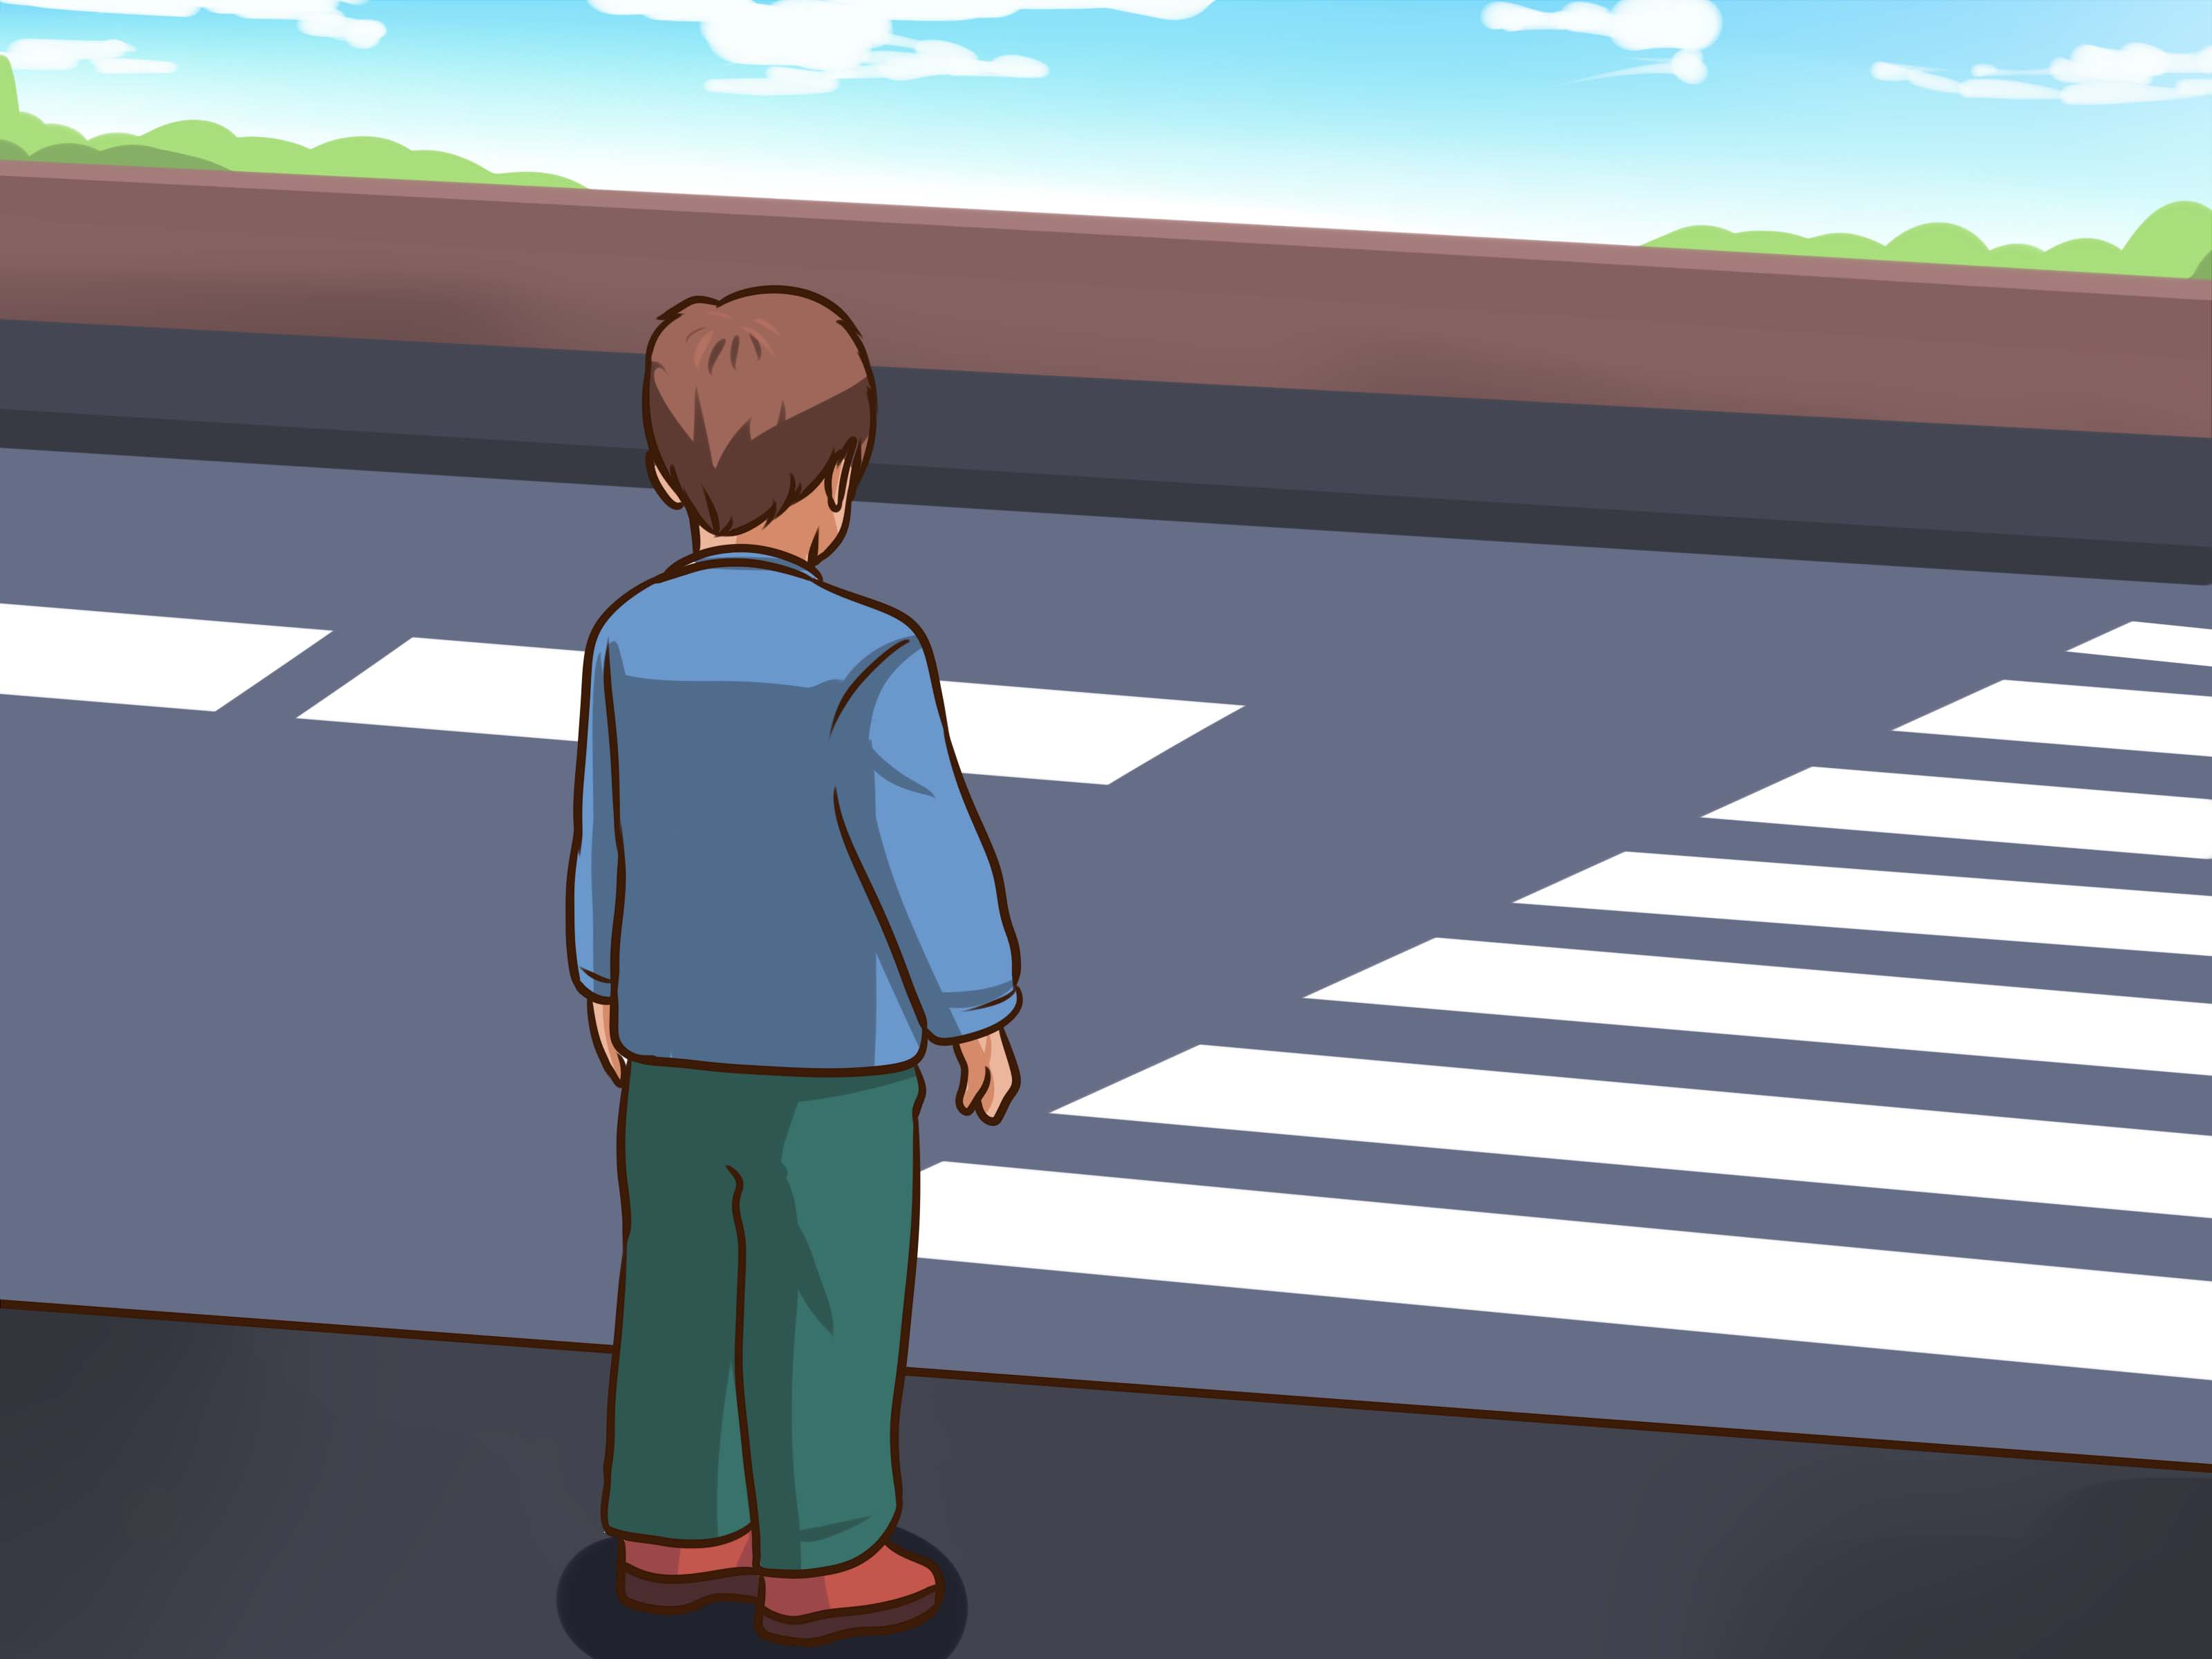 How to Teach Children Basic Street Safety when Walking.